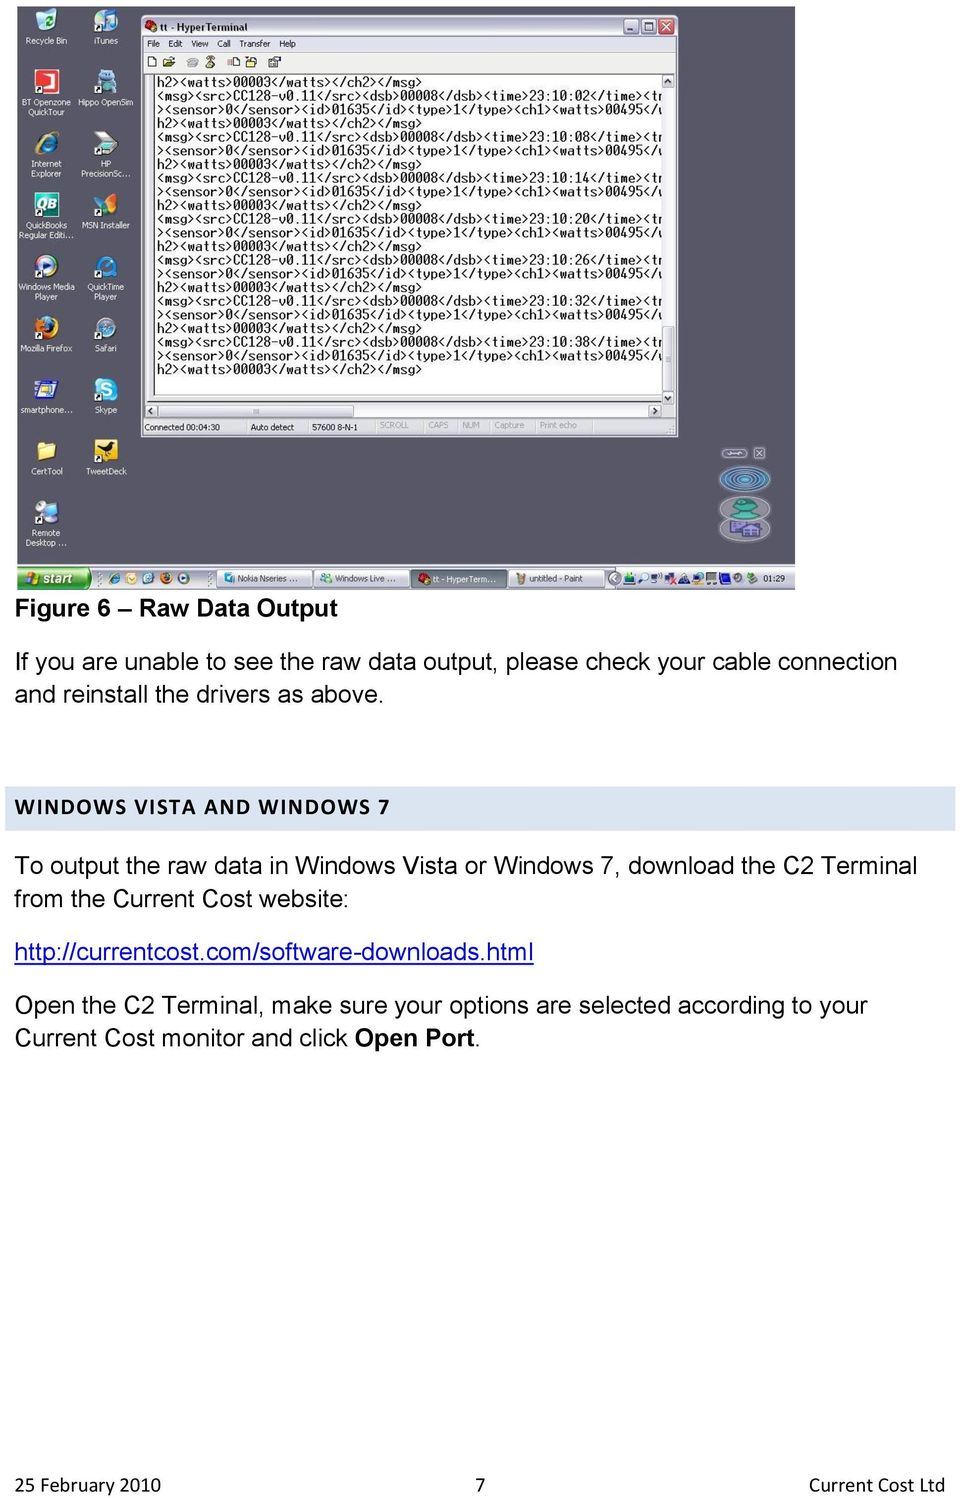 WINDOWS VISTA AND WINDOWS 7 To output the raw data in Windows Vista or Windows 7, download the C2 Terminal from the